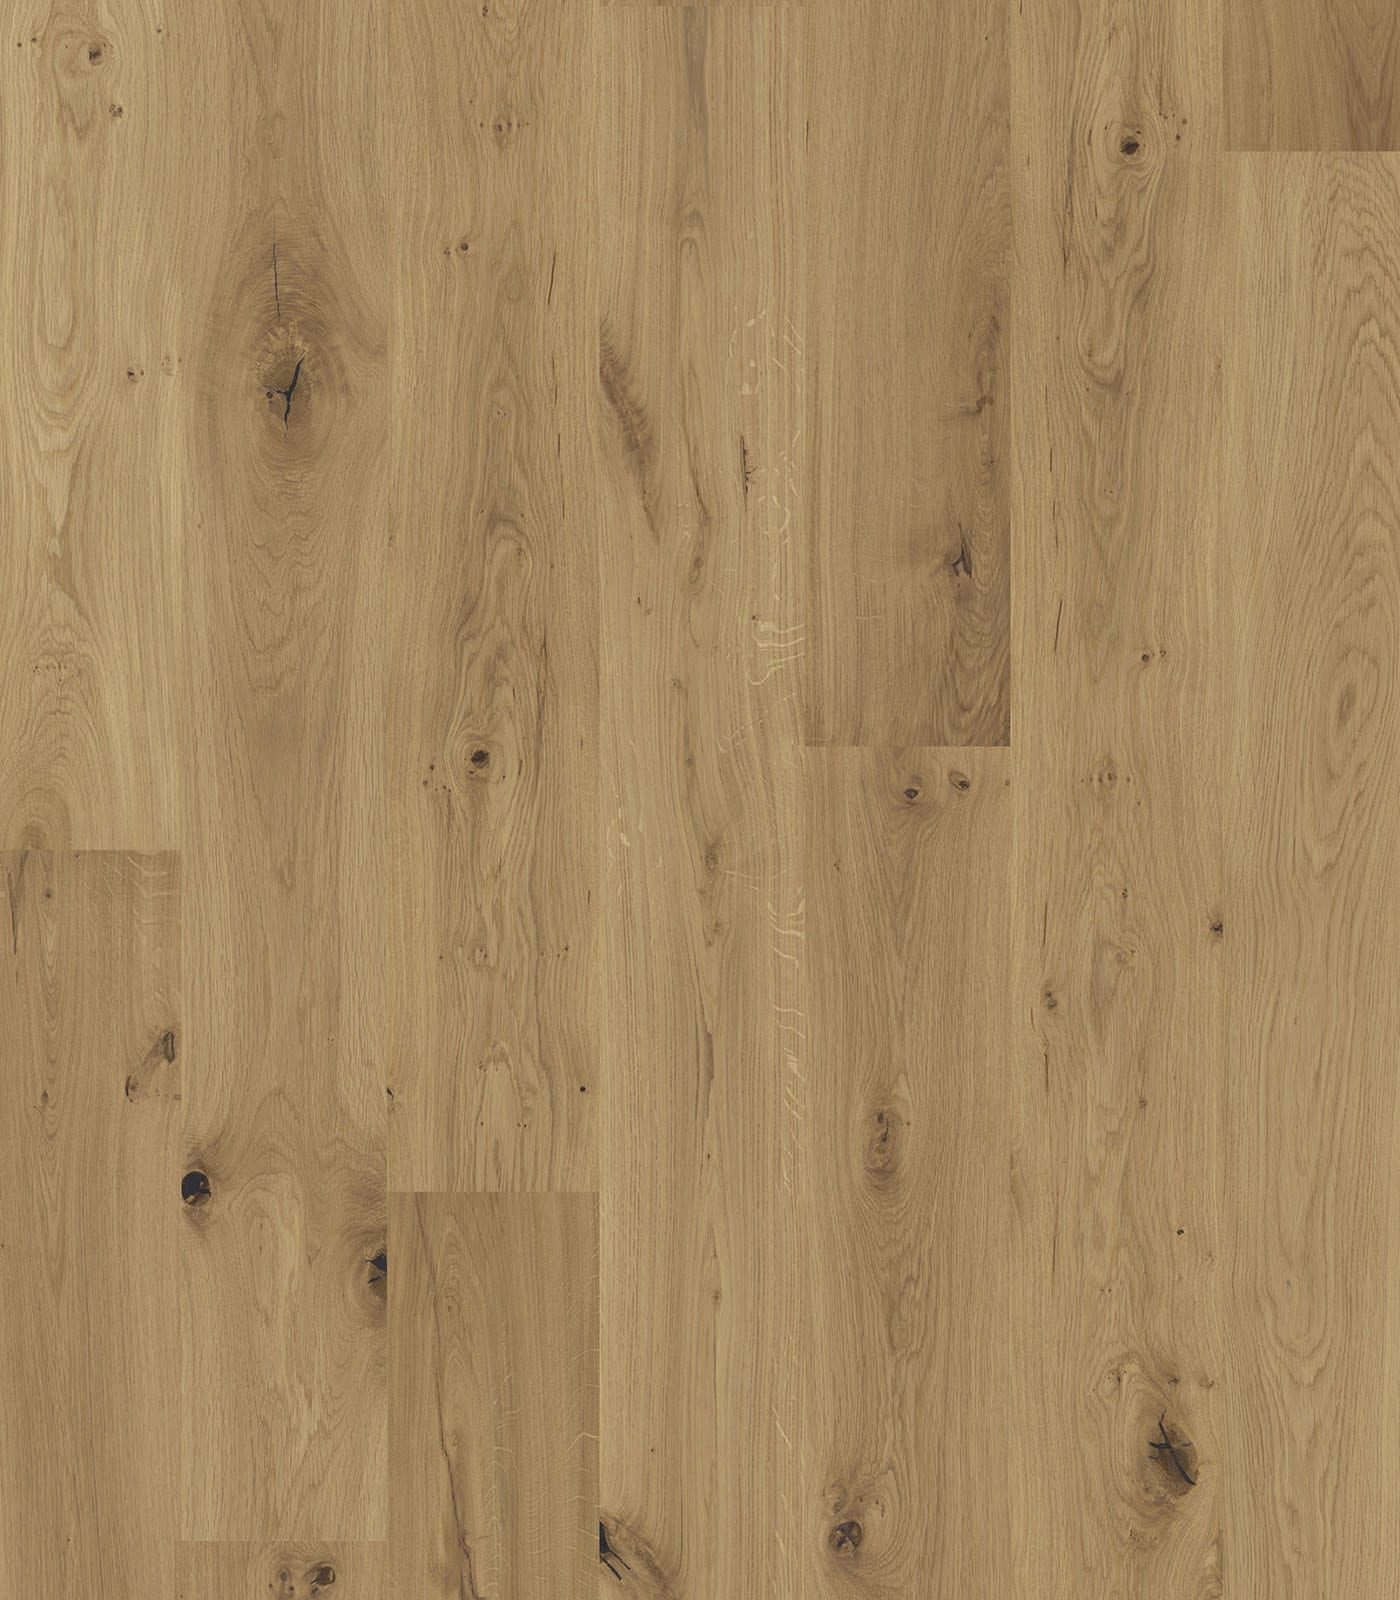 Llanos-Antique Collection-European Oak Floors-flat